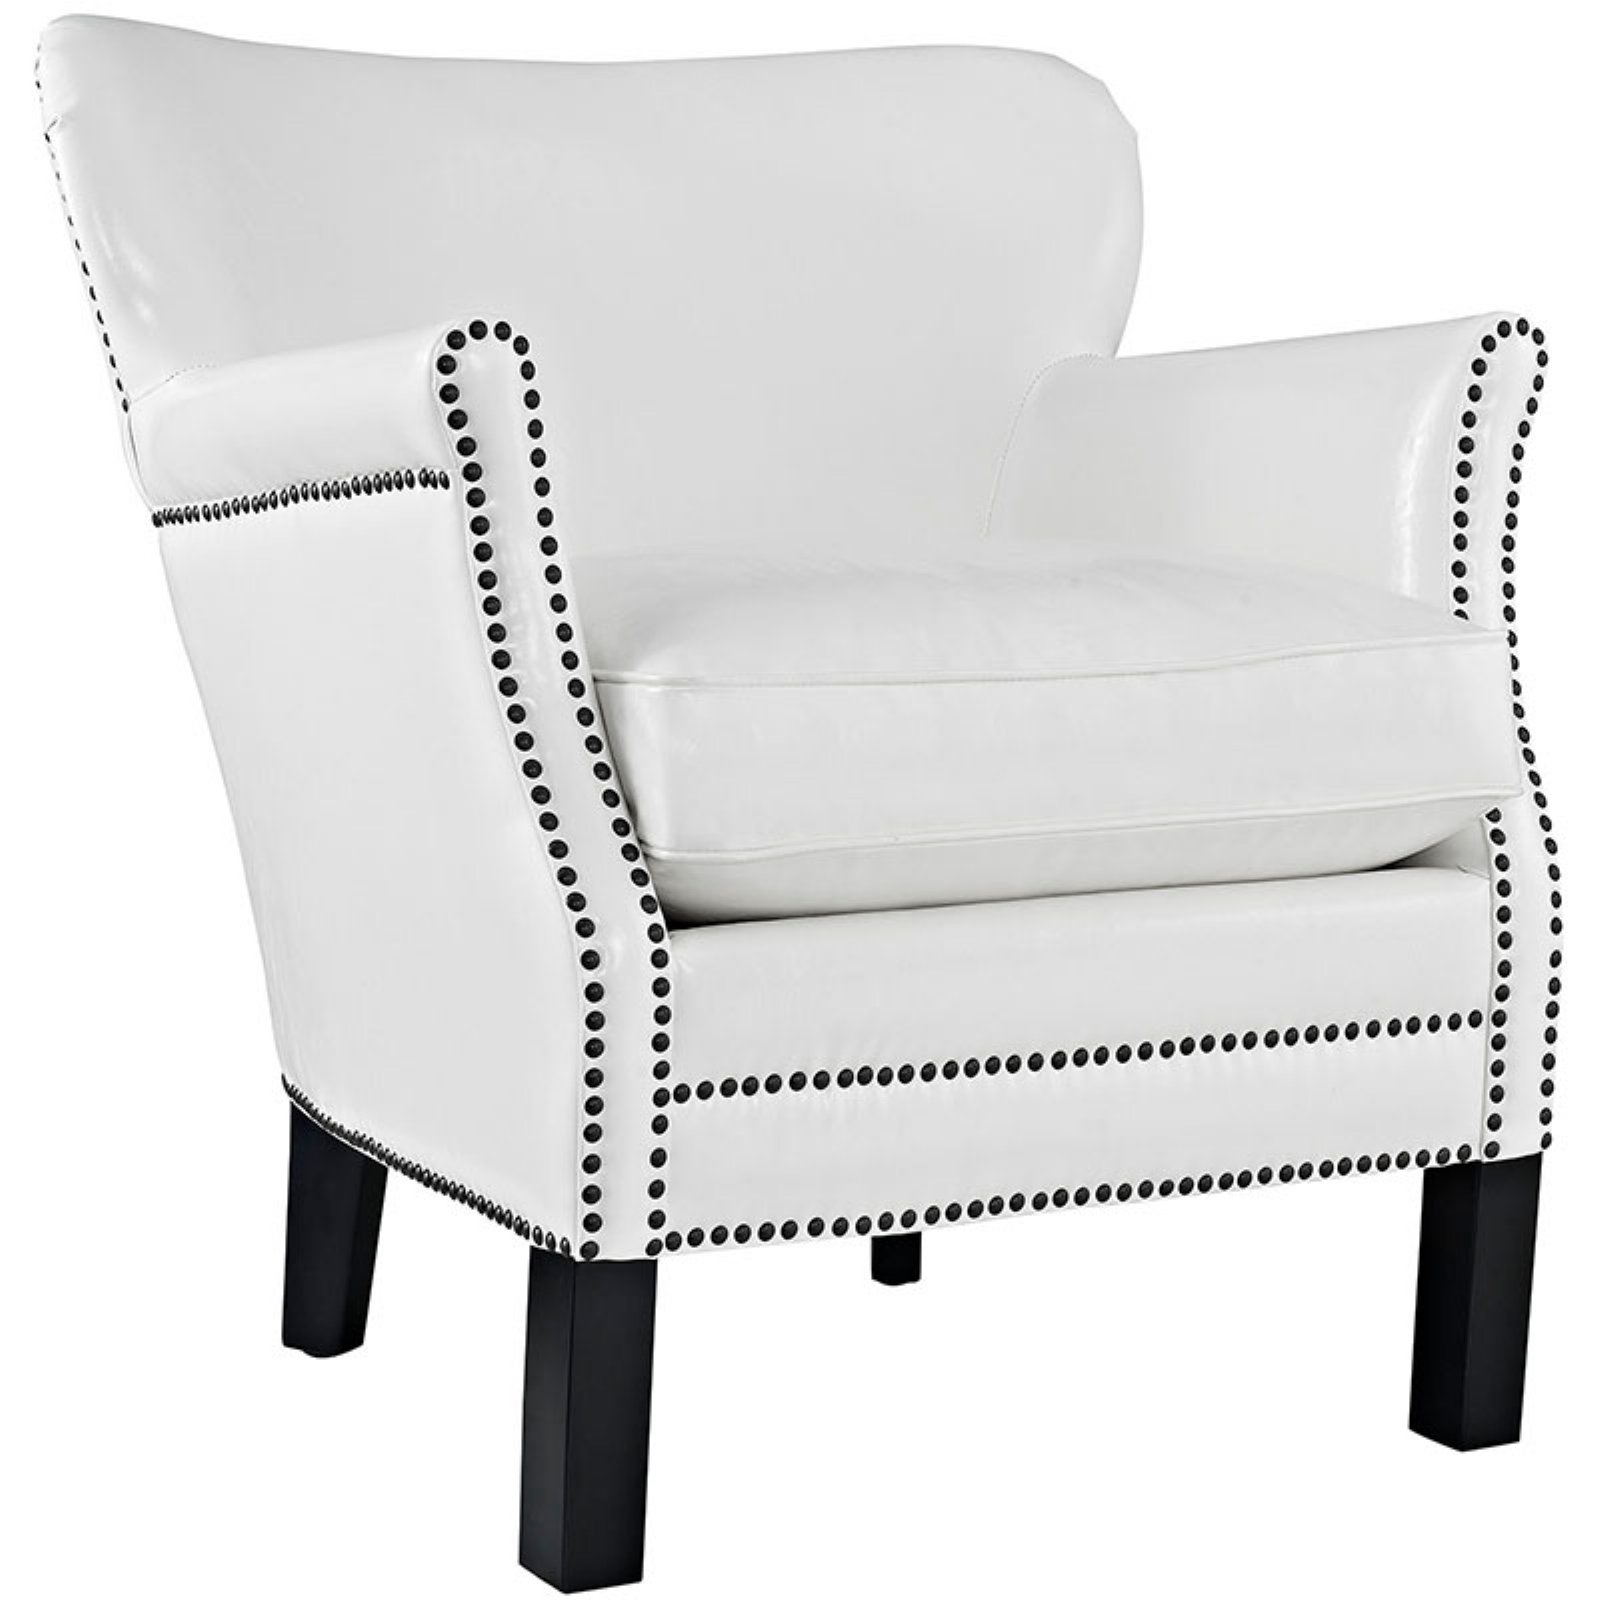 Modway Key Arm Chair